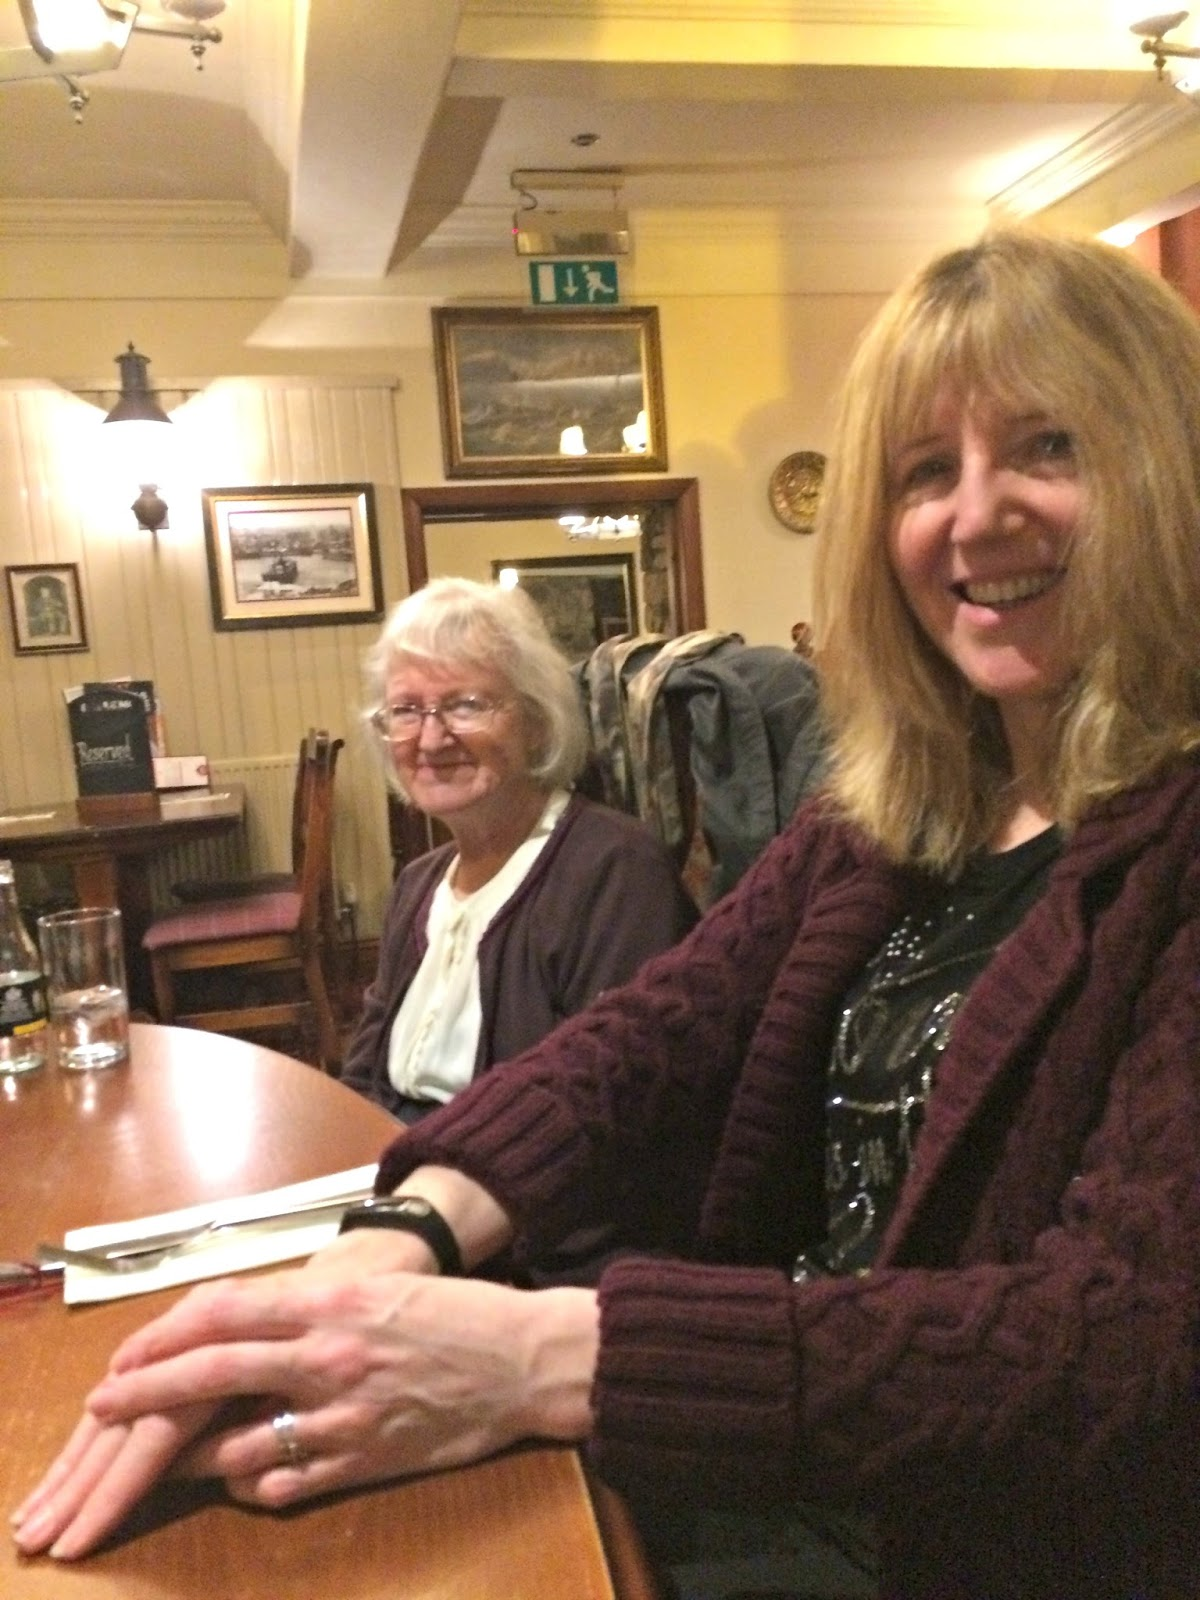 Linda and Mum in The Star Inn, Dinas Powys